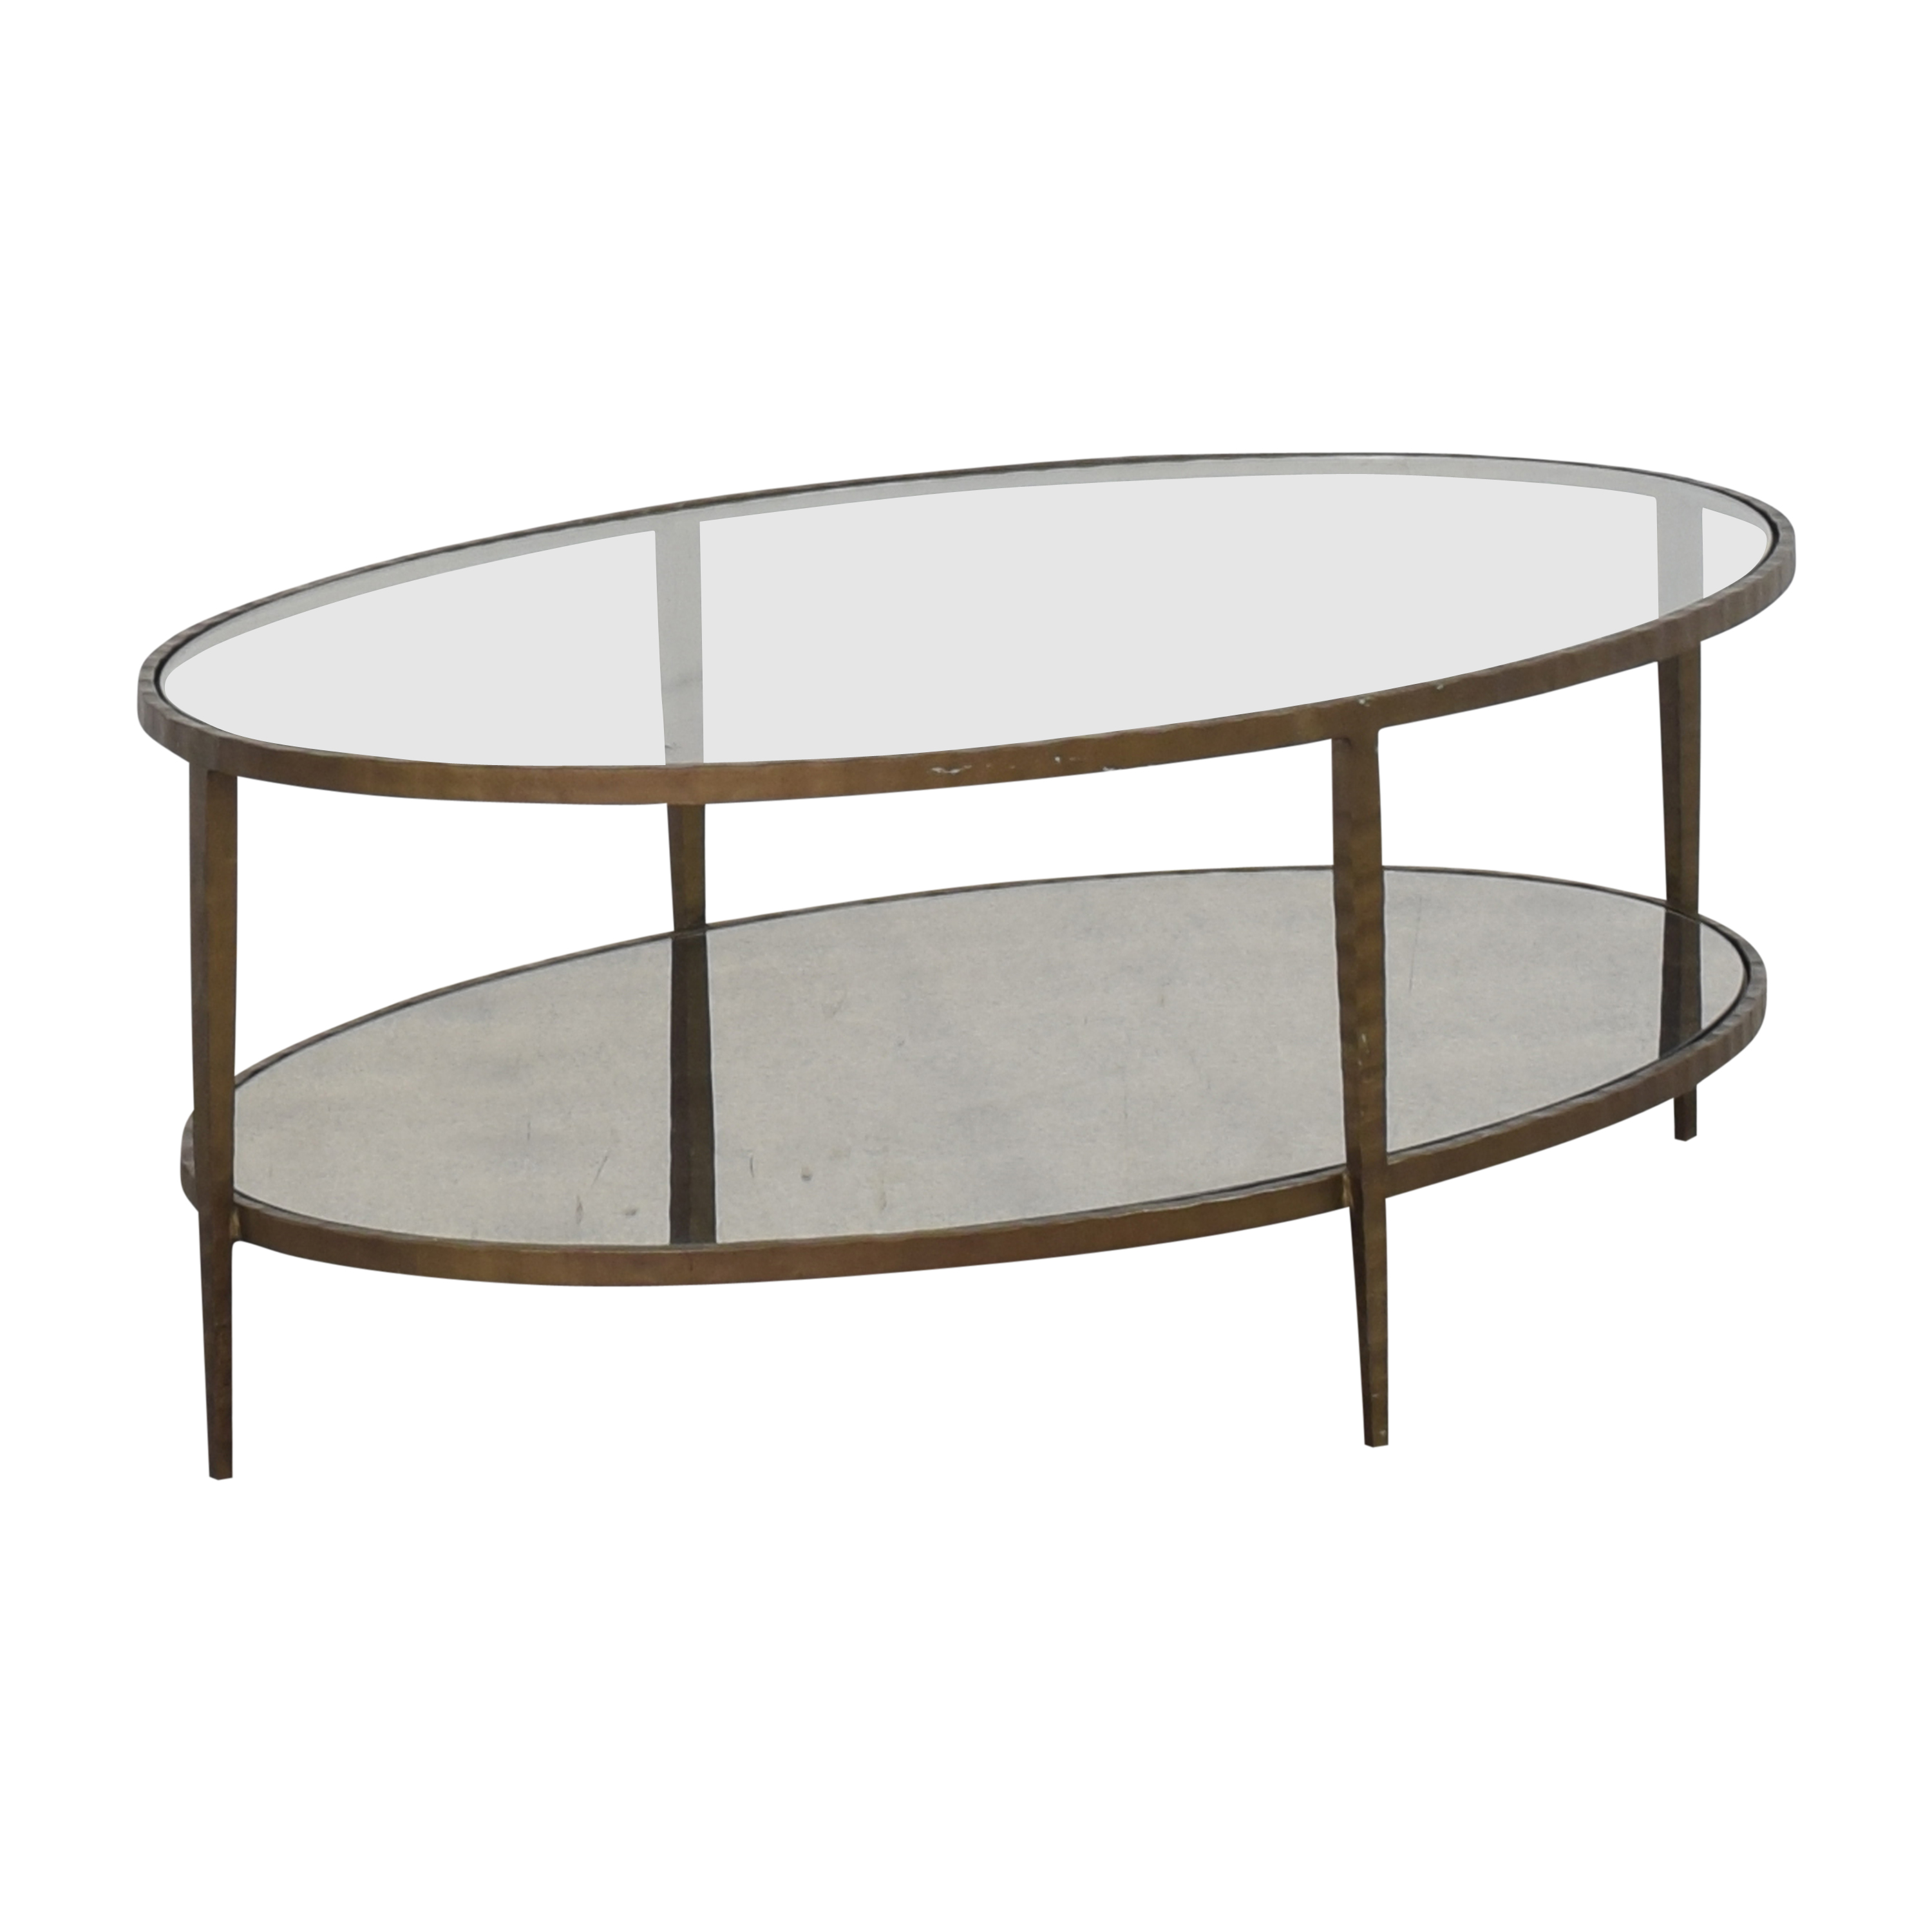 Crate & Barrel Clairemont Oval Coffee Table / Tables